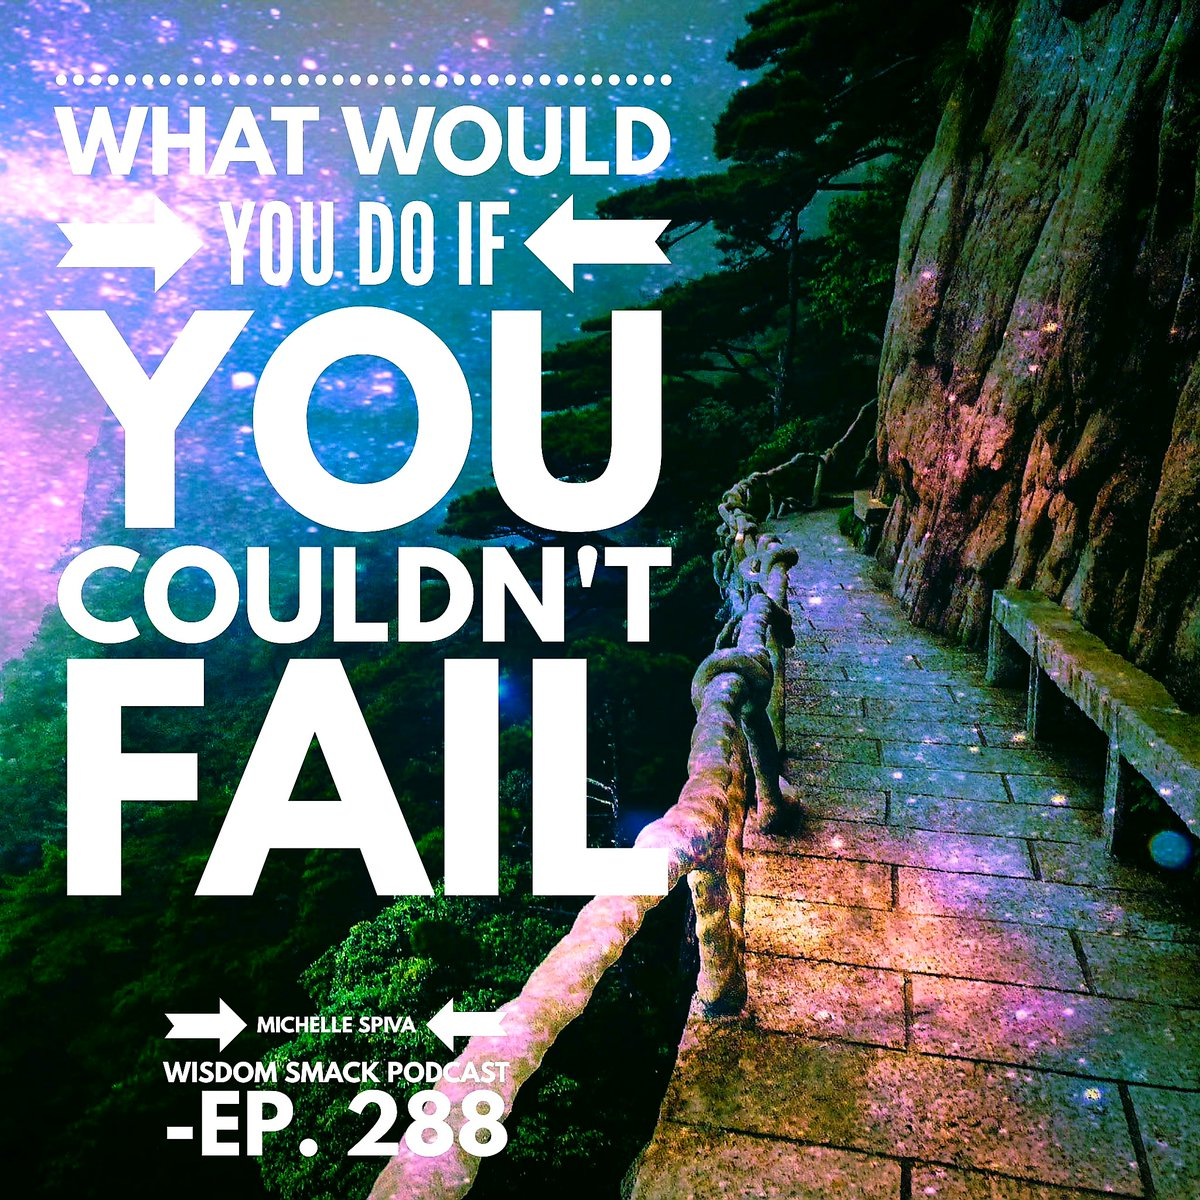 Have you taken the time to consider what you'd be or do if you knew you couldn't fail?  Today's  Podcast is LIVE! Ep. 288-What Would You Do If You Couldn't Fail?  #MichelleSpivaWisdomSmack #PracticalPriestessofWisdom #blackladyknowhow #podcasters